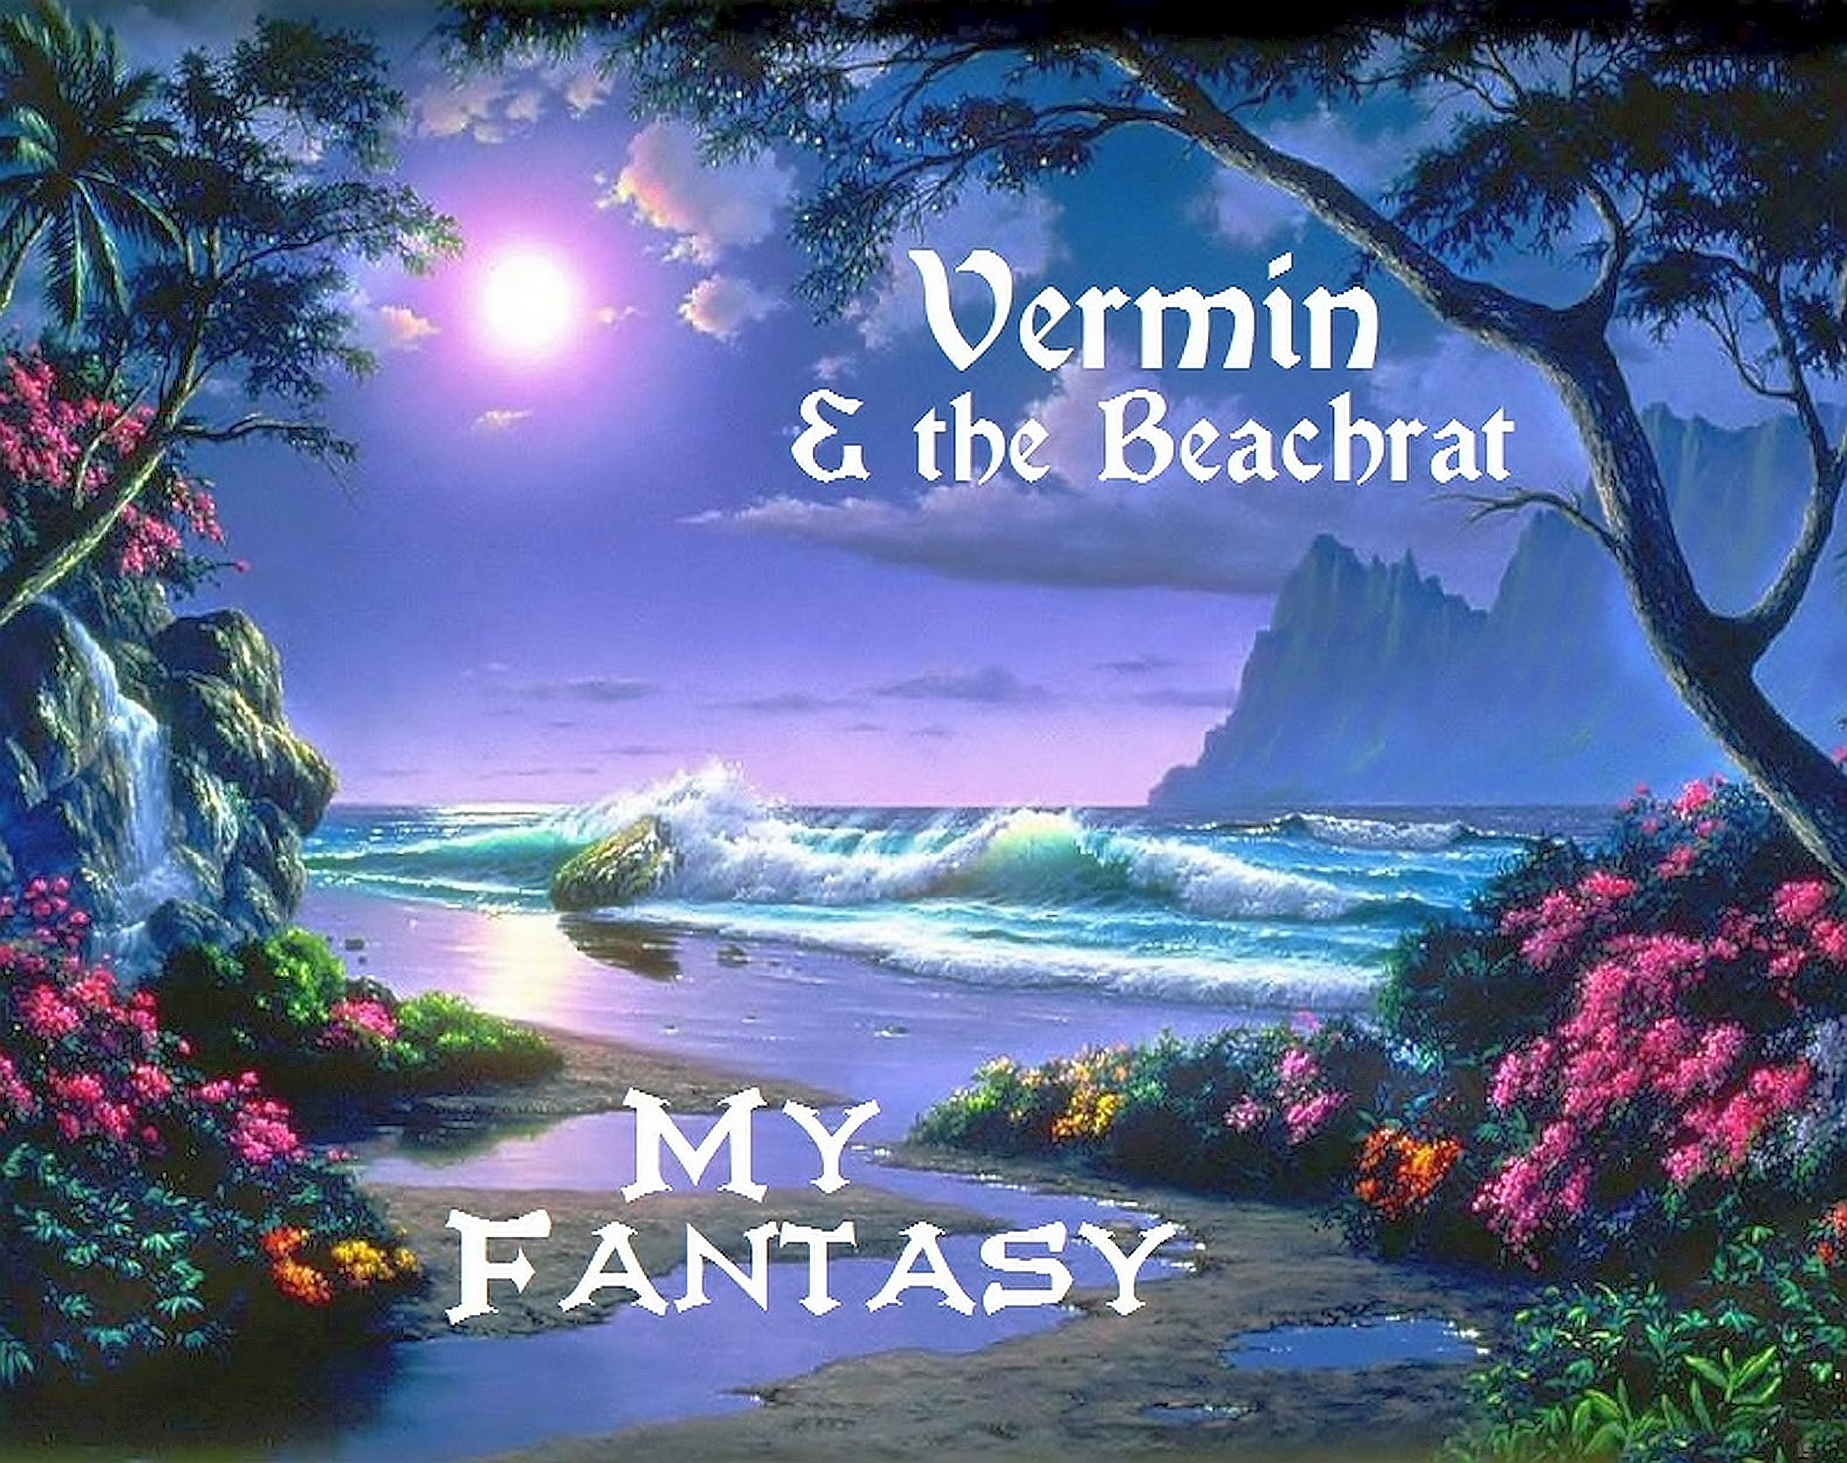 Vermin & the Beachrat